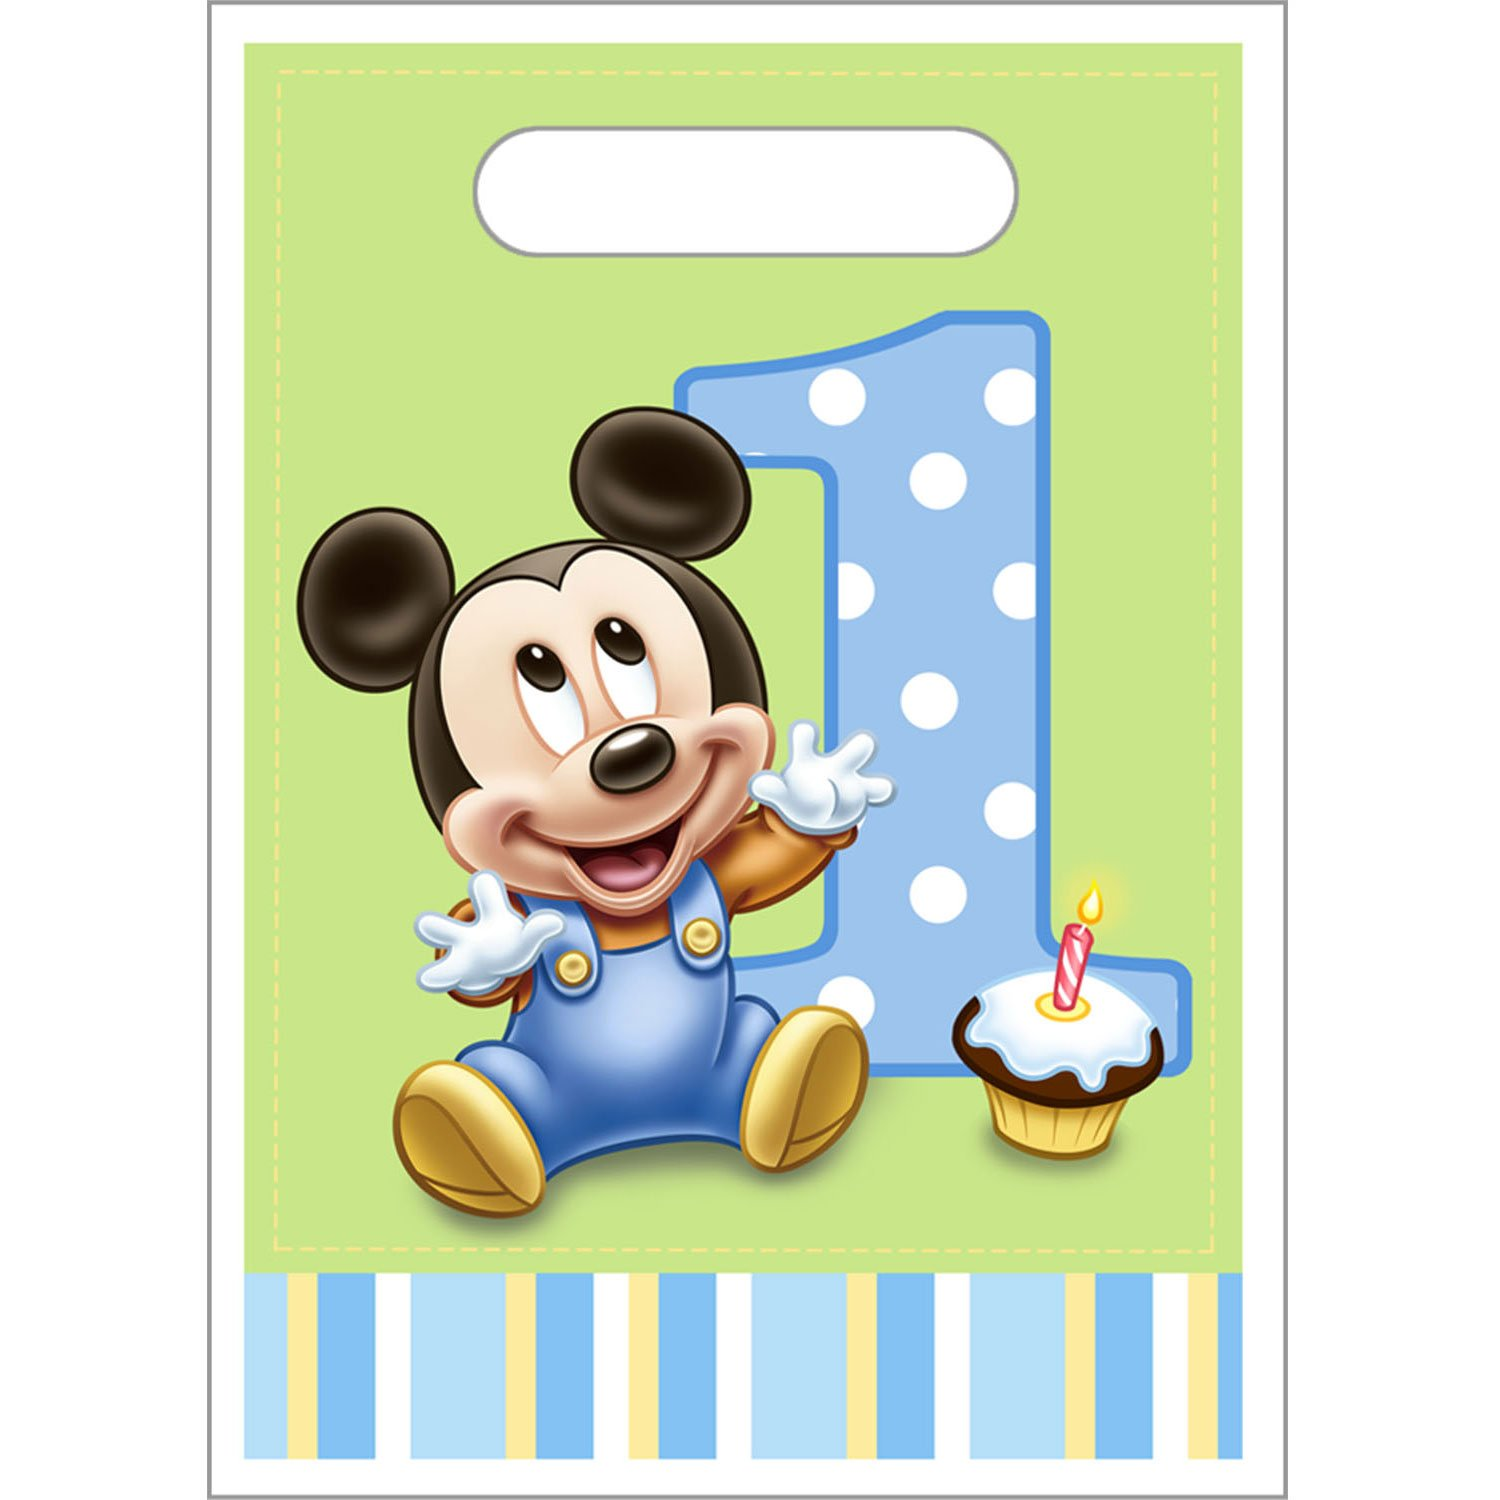 Mickey Mouse Boys First Birthday Party Supplies  Birthday. Change Management Template Excel. Balance Sheet Excel Template. Nursing Jobs In Nyc For New Graduates. Sample Letter Of Intent For Graduate School. Gantt Chart Excel Template Download. Example Letter Of Recommendation For Graduate School. Keller Graduate School Of Management Ranking. Home Remodeling Cost Estimate Template